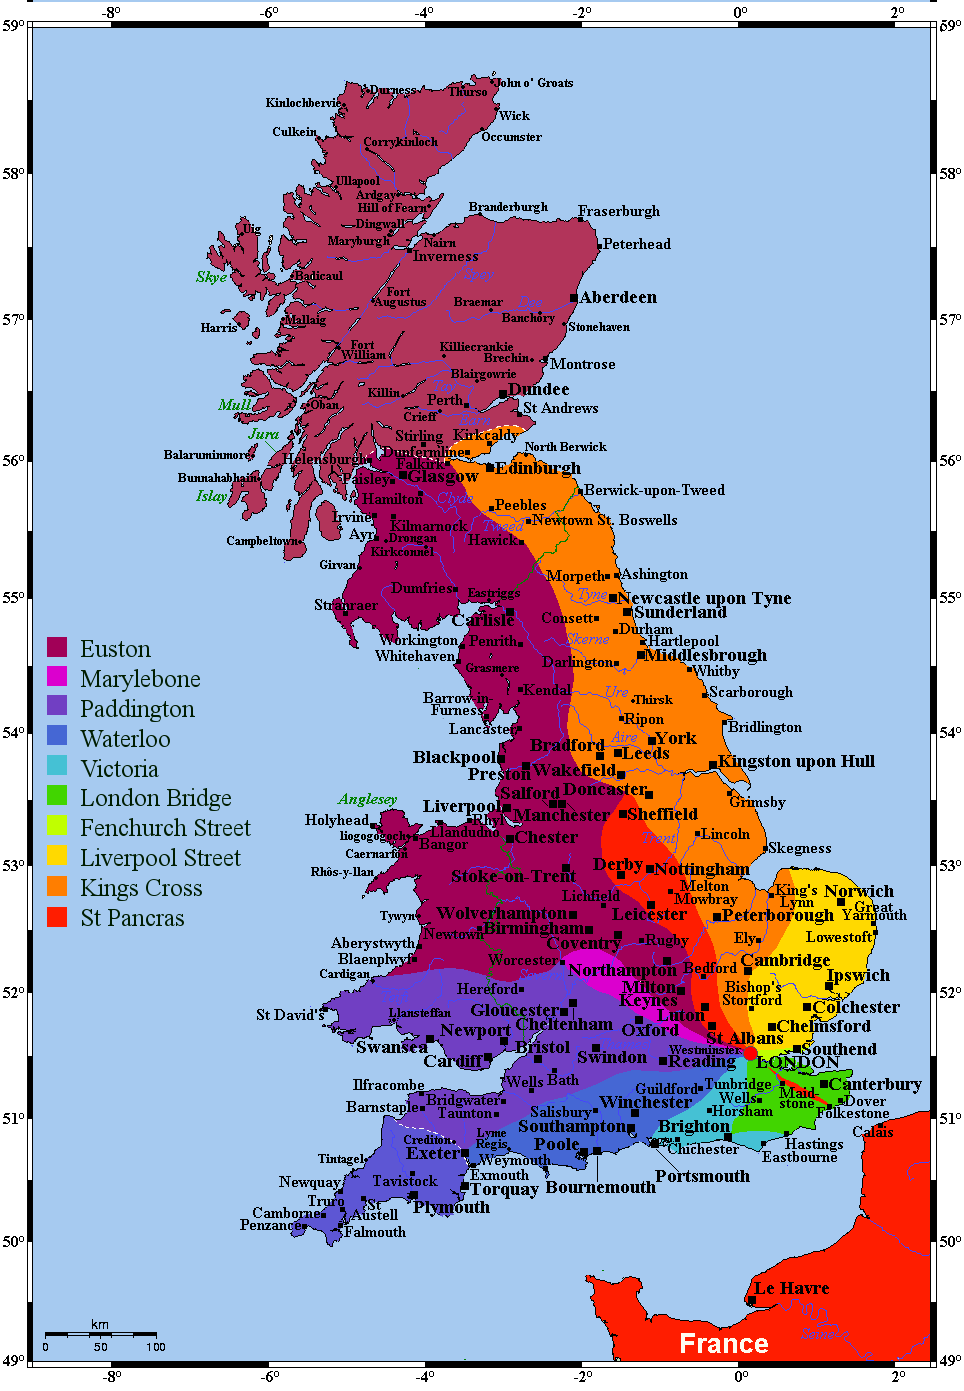 RT @_tomkeeley: RT @IncredibleMaps Where in the UK to London's Major Railway Stations take you? http://t.co/CoJBq76lHm